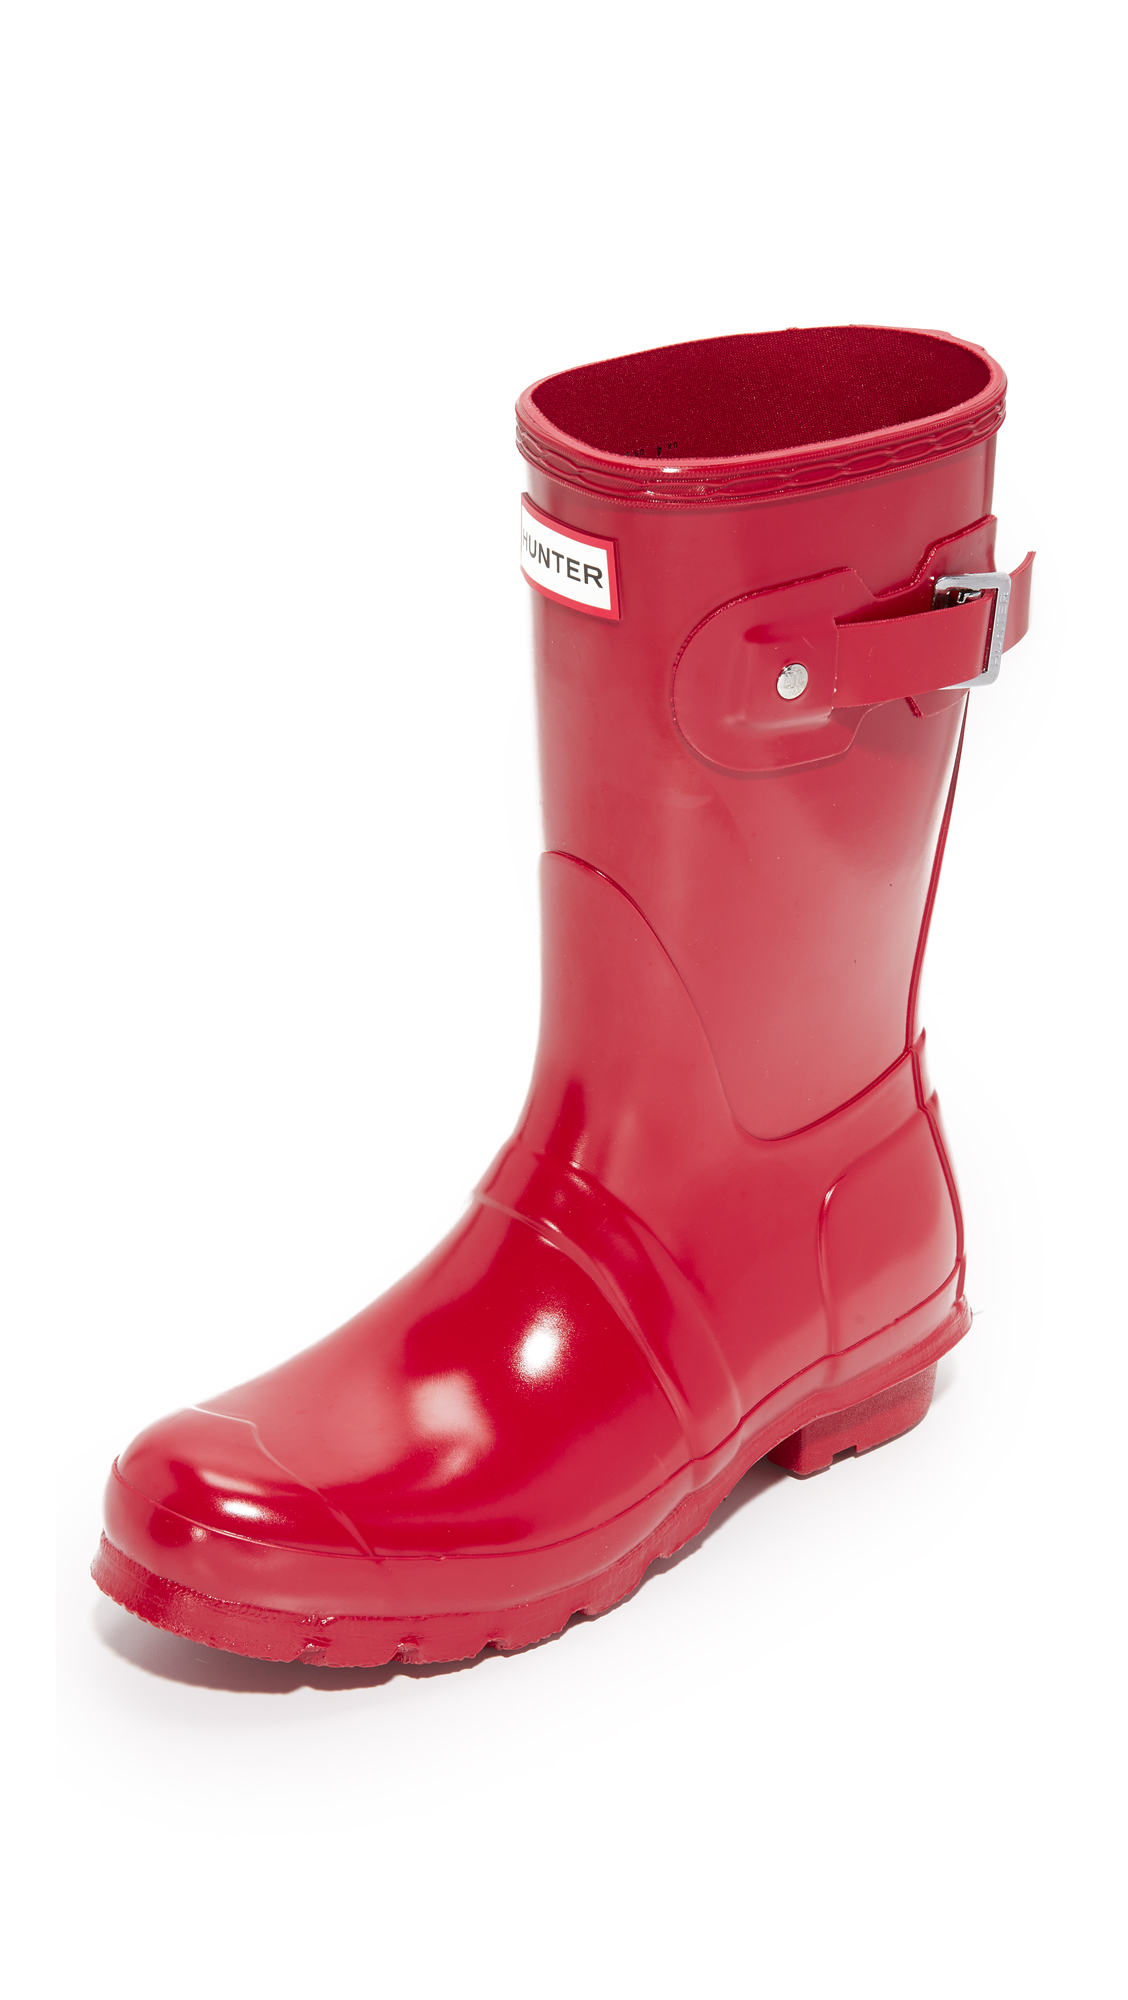 Hunter Boots Original Short Gloss Boots - Military Red at Shopbop